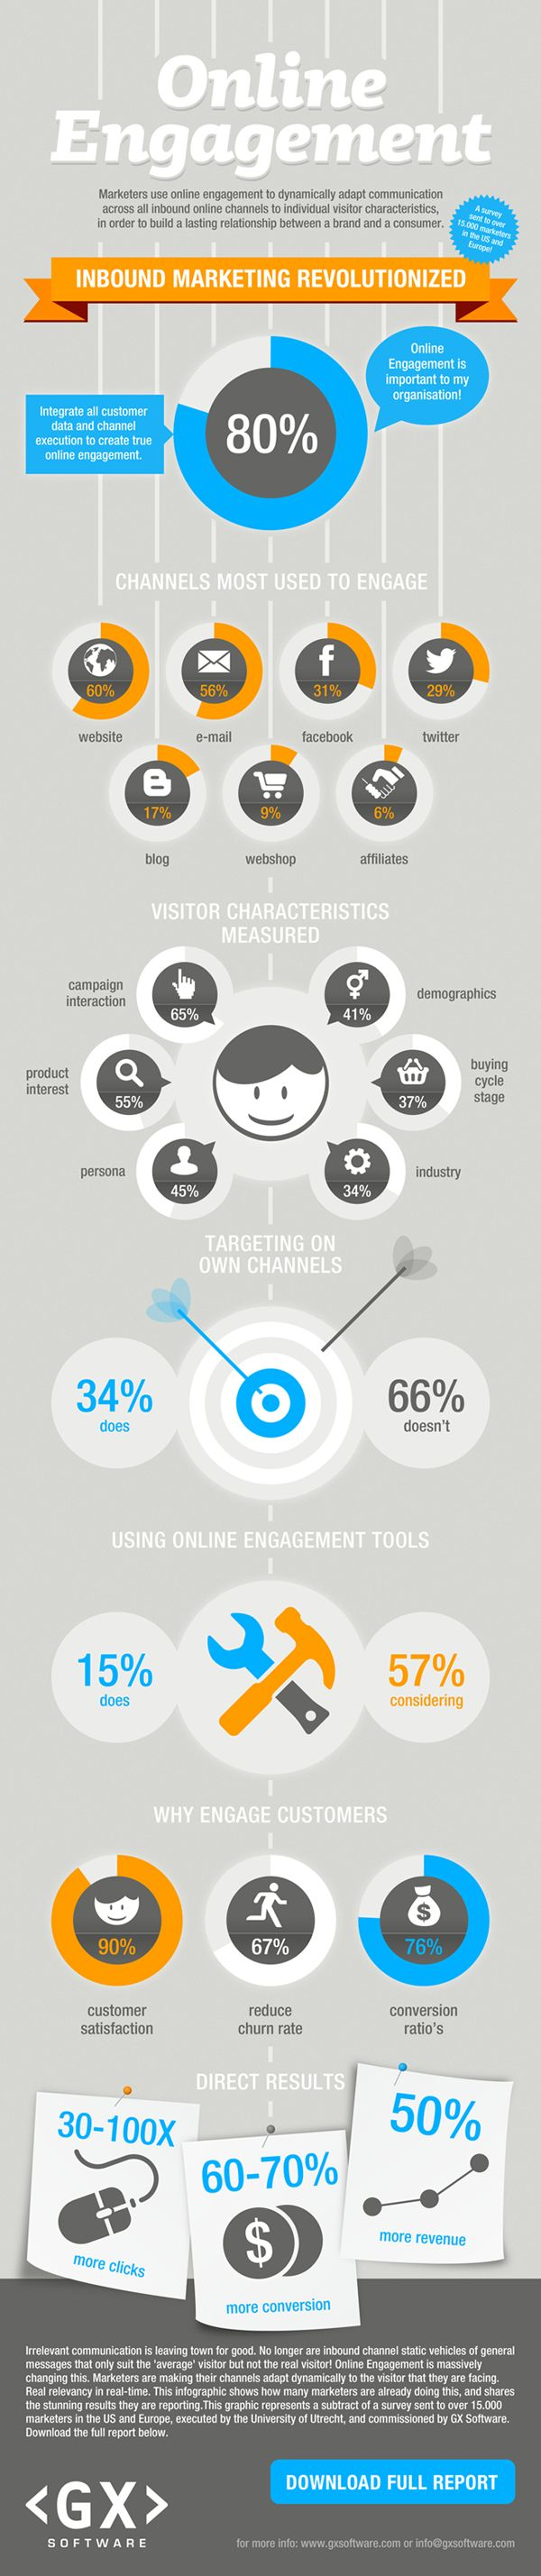 Online Engagement #infographie